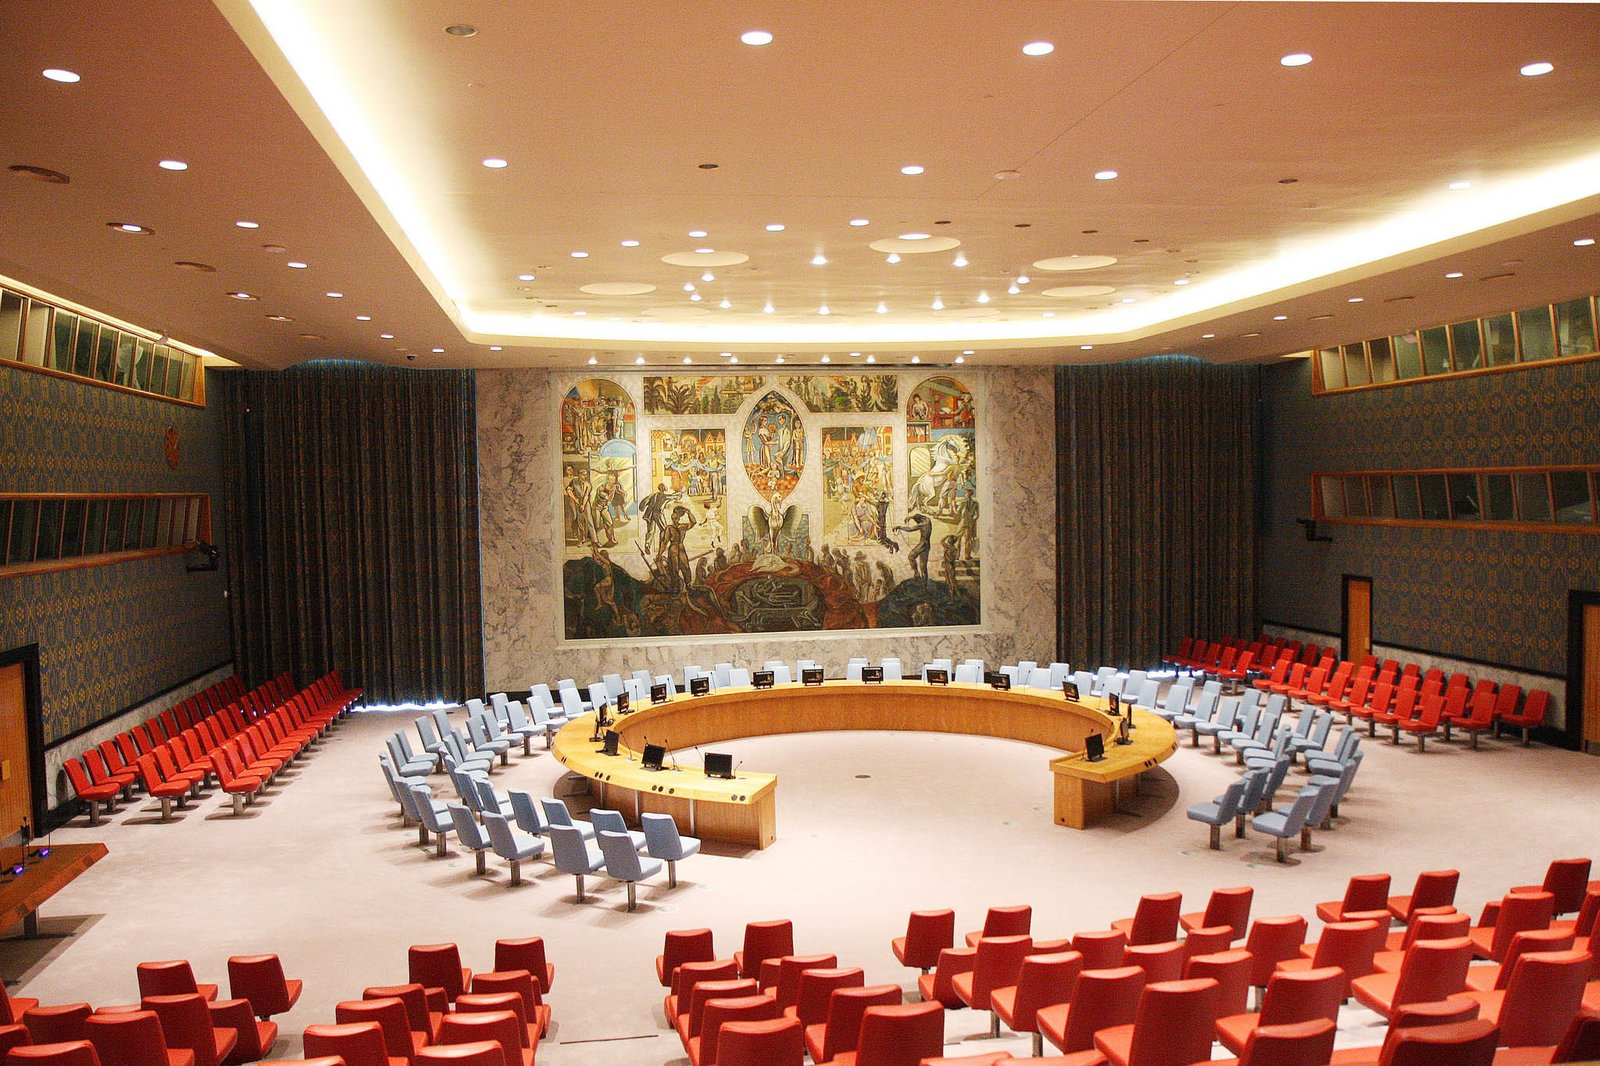 A Look Inside The United Nations Restored Security